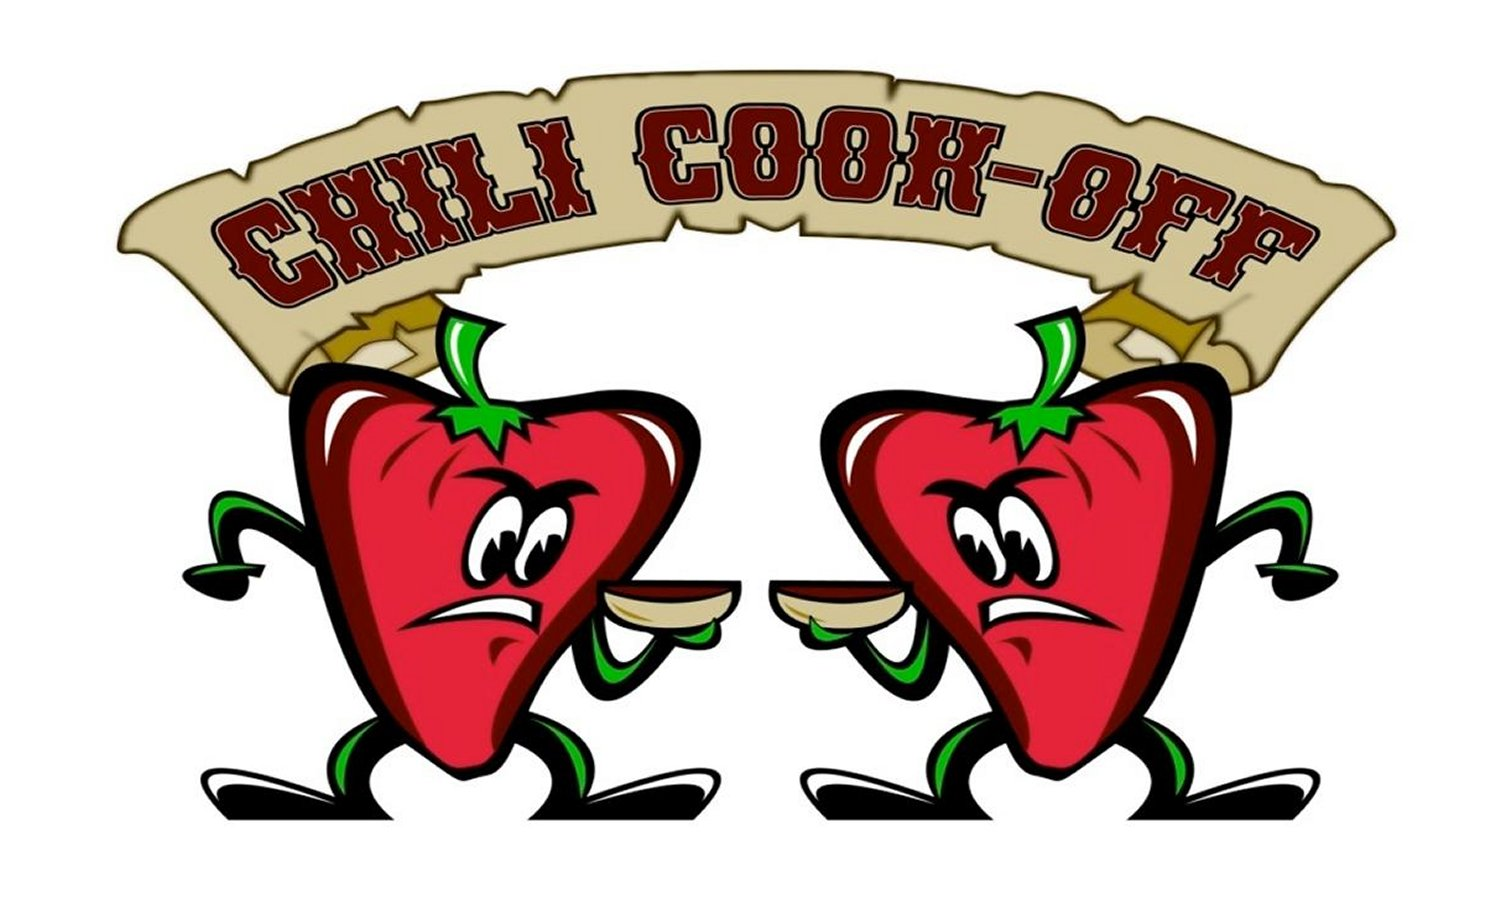 Clipart 1st annual chili cook off color png download Chili Cookoff Images | Free download best Chili Cookoff Images on ... png download